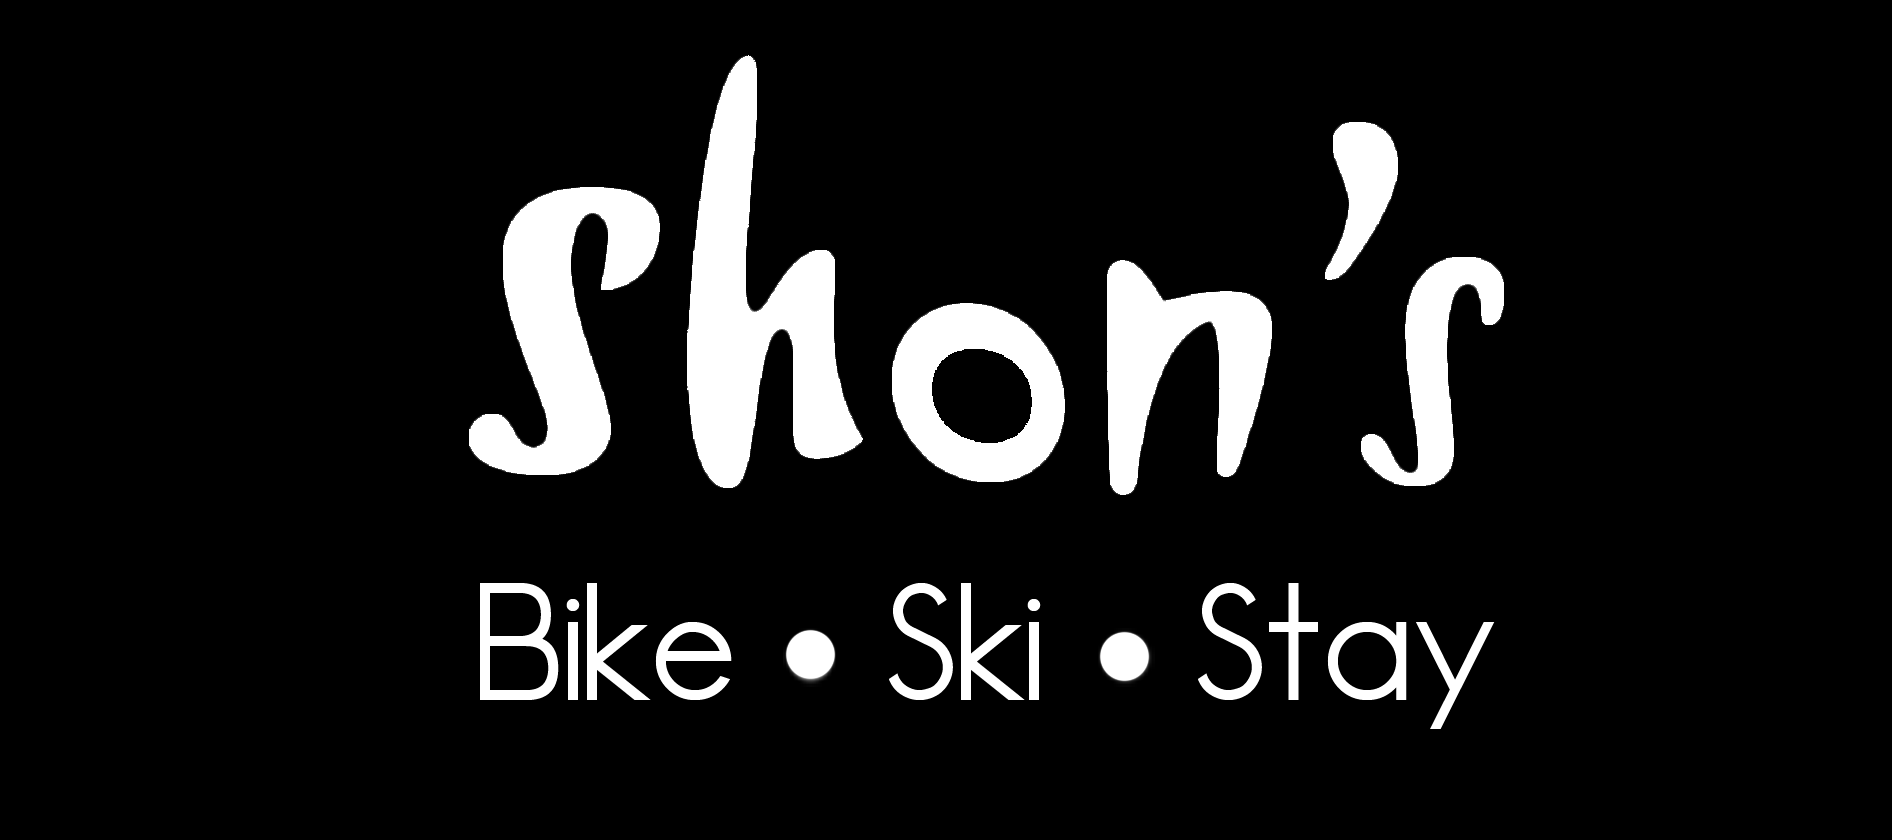 Shon's Bike – Ski – Stay